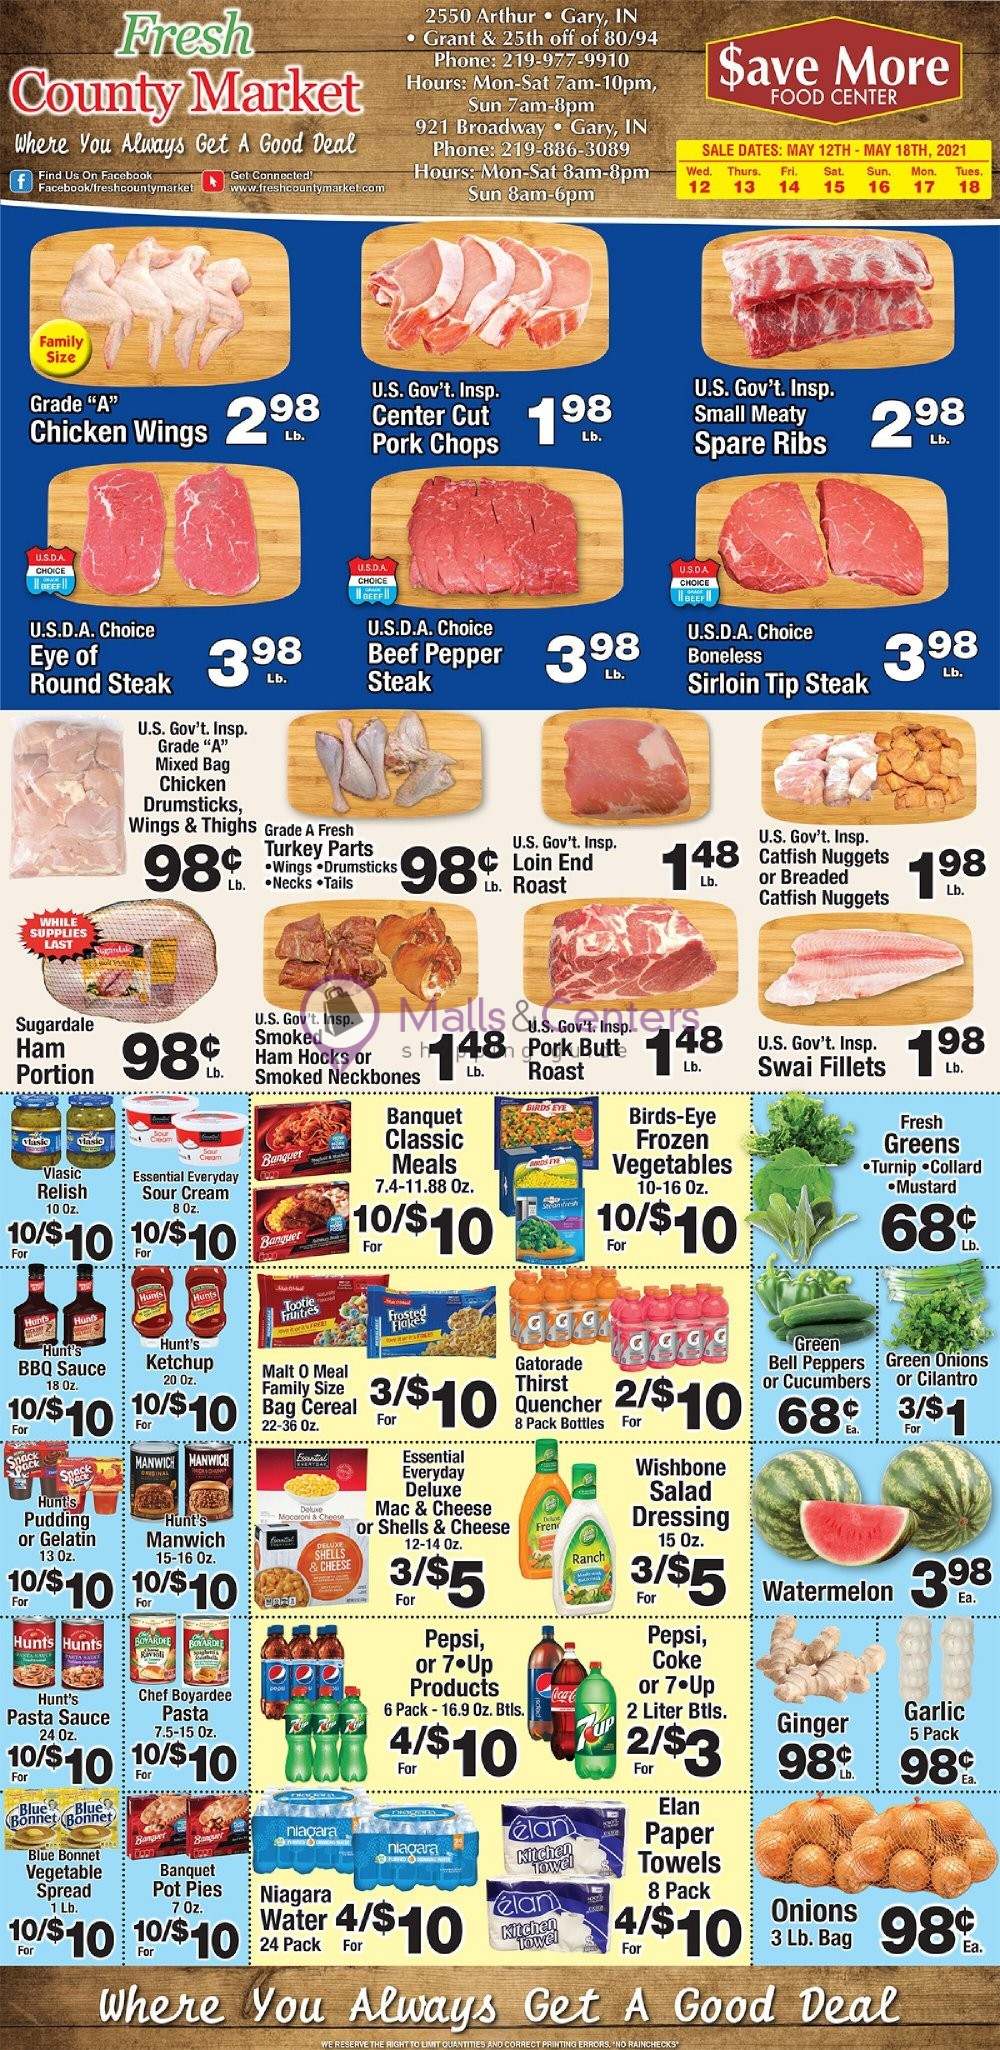 weekly ads Fresh County Market - page 1 - mallscenters.com